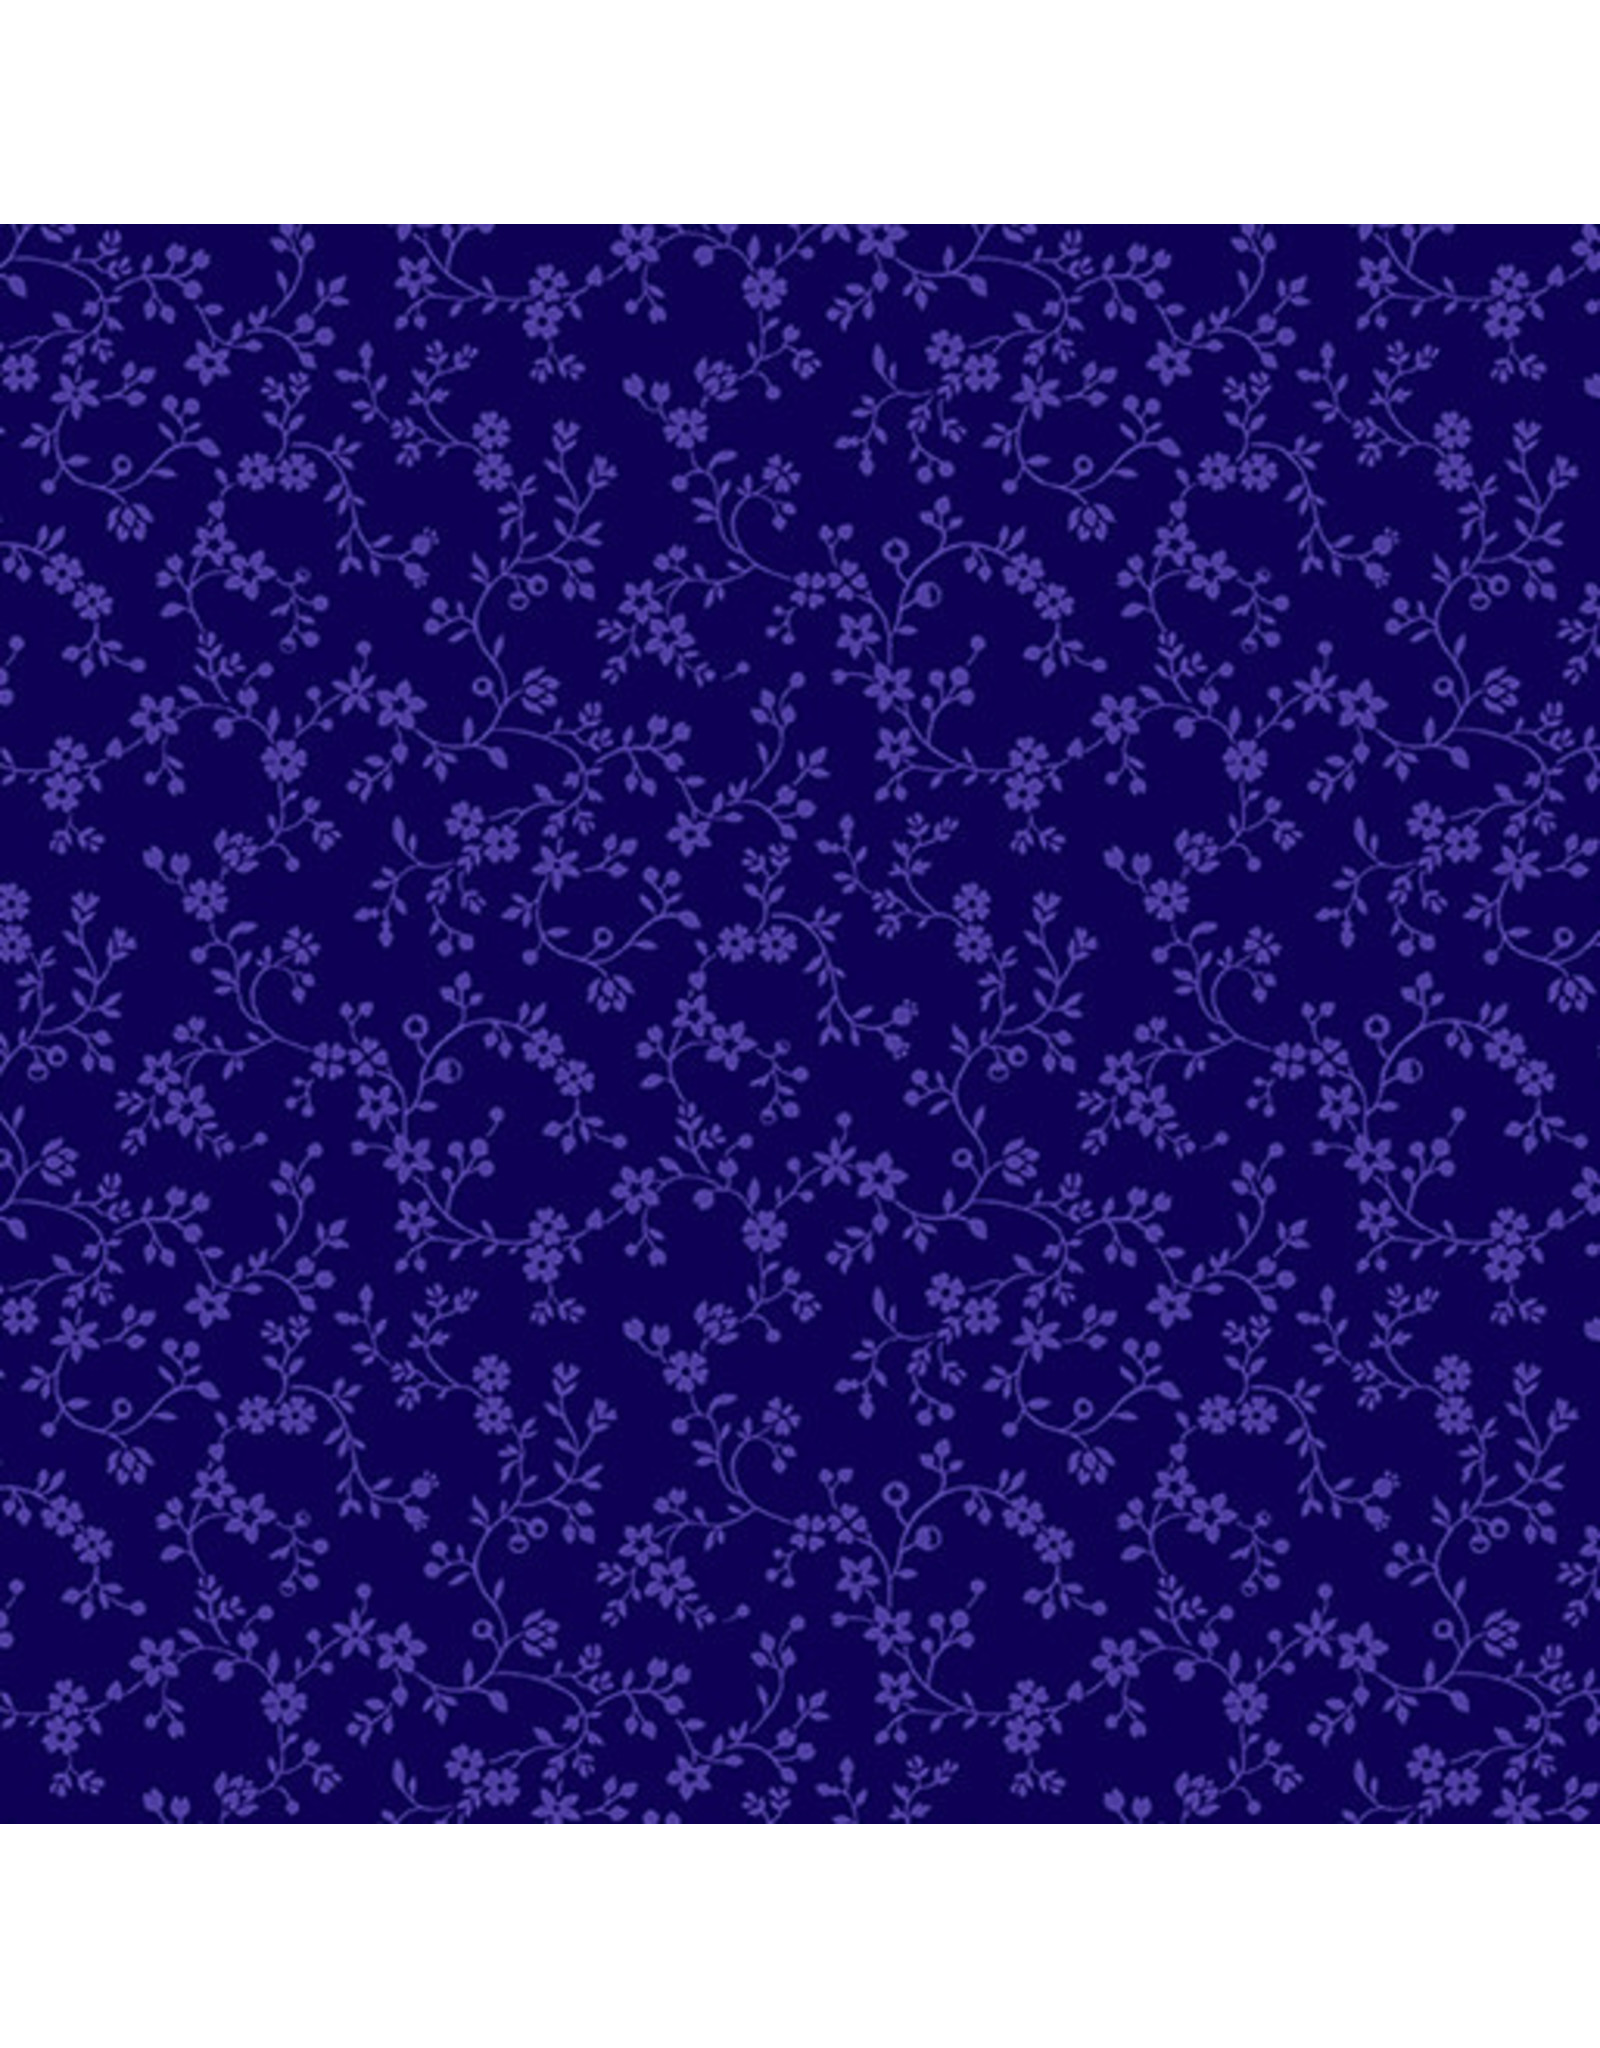 Kanvas Studio Flowery Vines - Navy